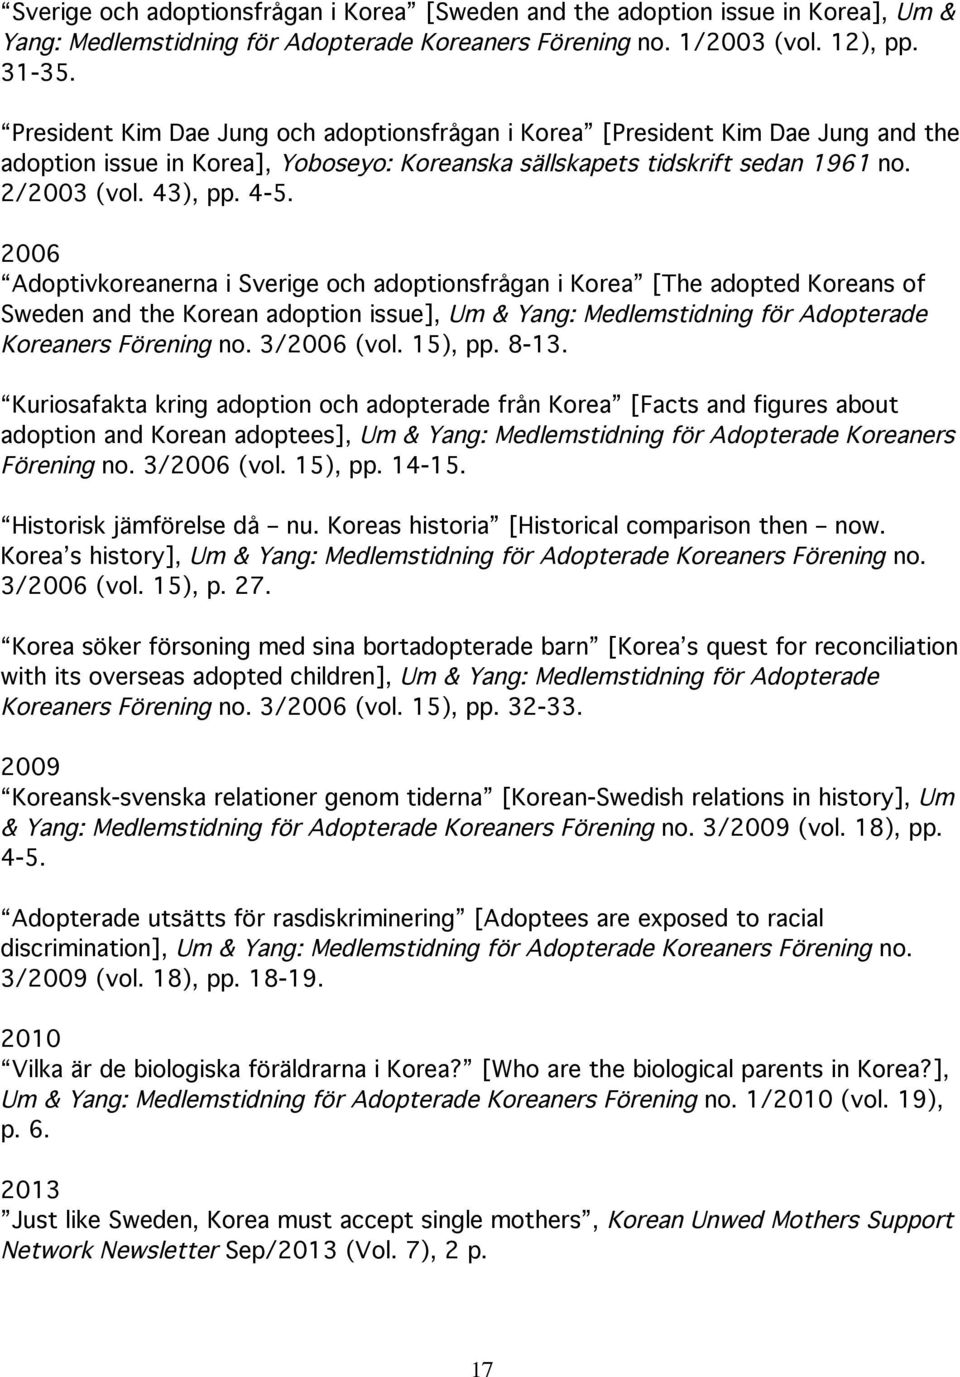 2006 Adoptivkoreanerna i Sverige och adoptionsfrågan i Korea [The adopted Koreans of Sweden and the Korean adoption issue], Um & Yang: Medlemstidning för Adopterade Koreaners Förening no. 3/2006 (vol.